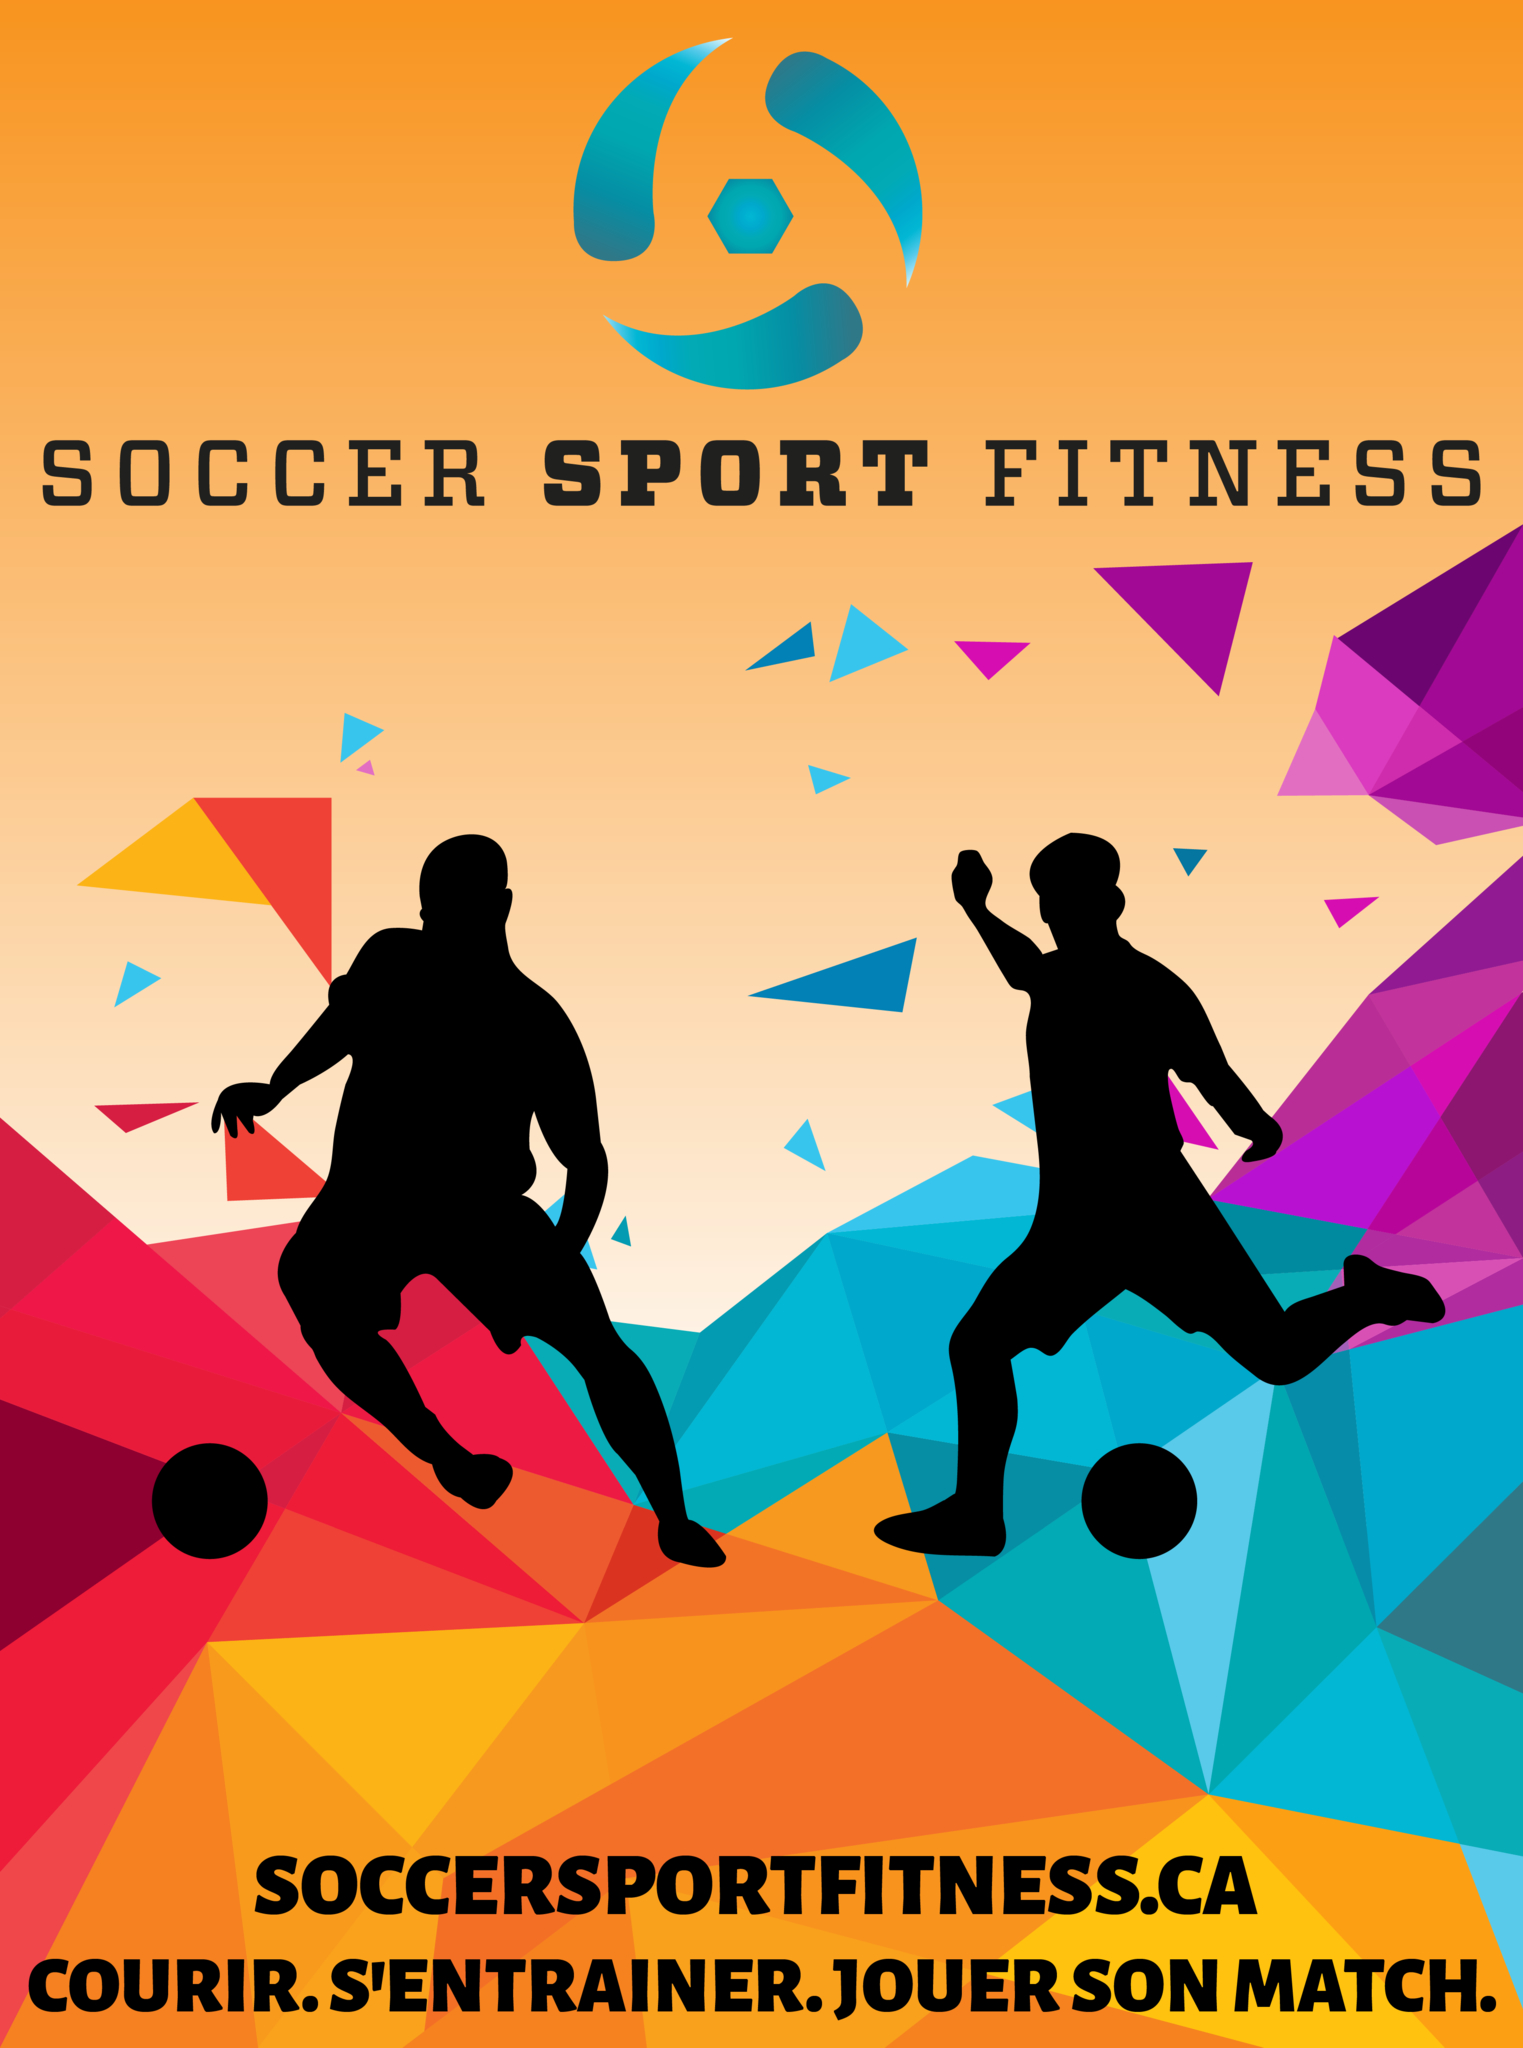 Soccer Sport Fitness à Saint-Augustin-de-Desmaures: Soccer Sport Fitness.  RUN. TRAIN. PLAY YOUR GAME.